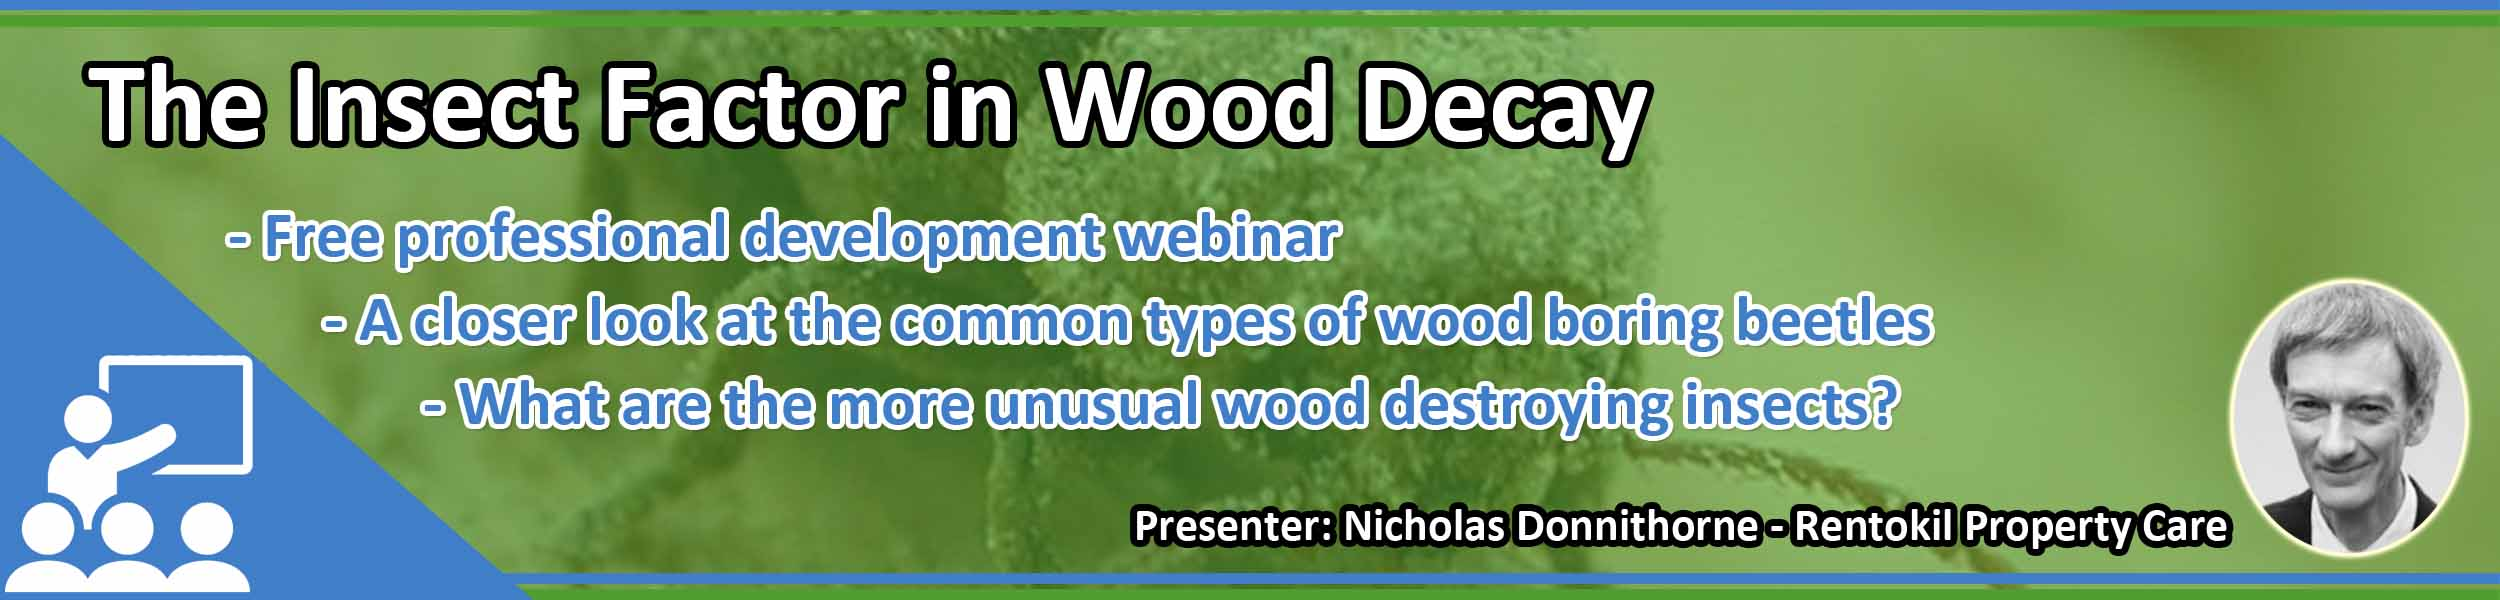 The Insect Factor in Wood Decay - Webinar